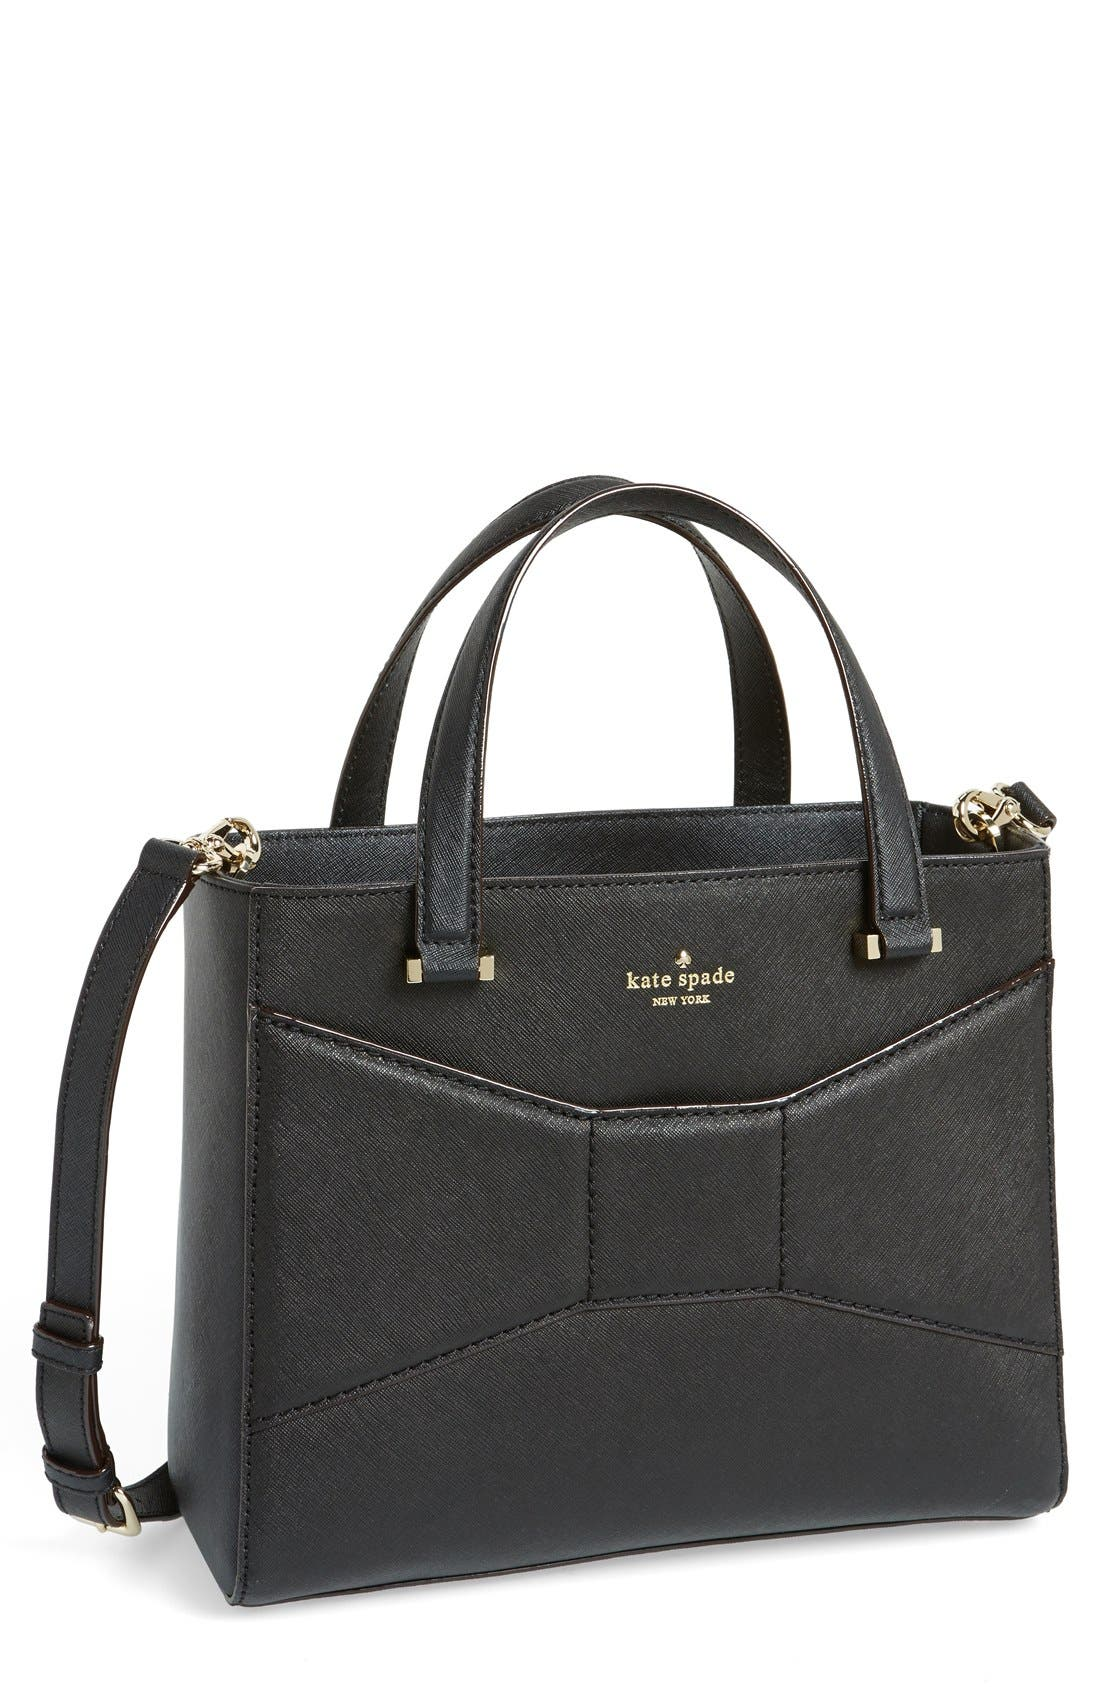 Main Image - kate spade new york '2 park avenue sweetheart' saffiano leather crossbody tote